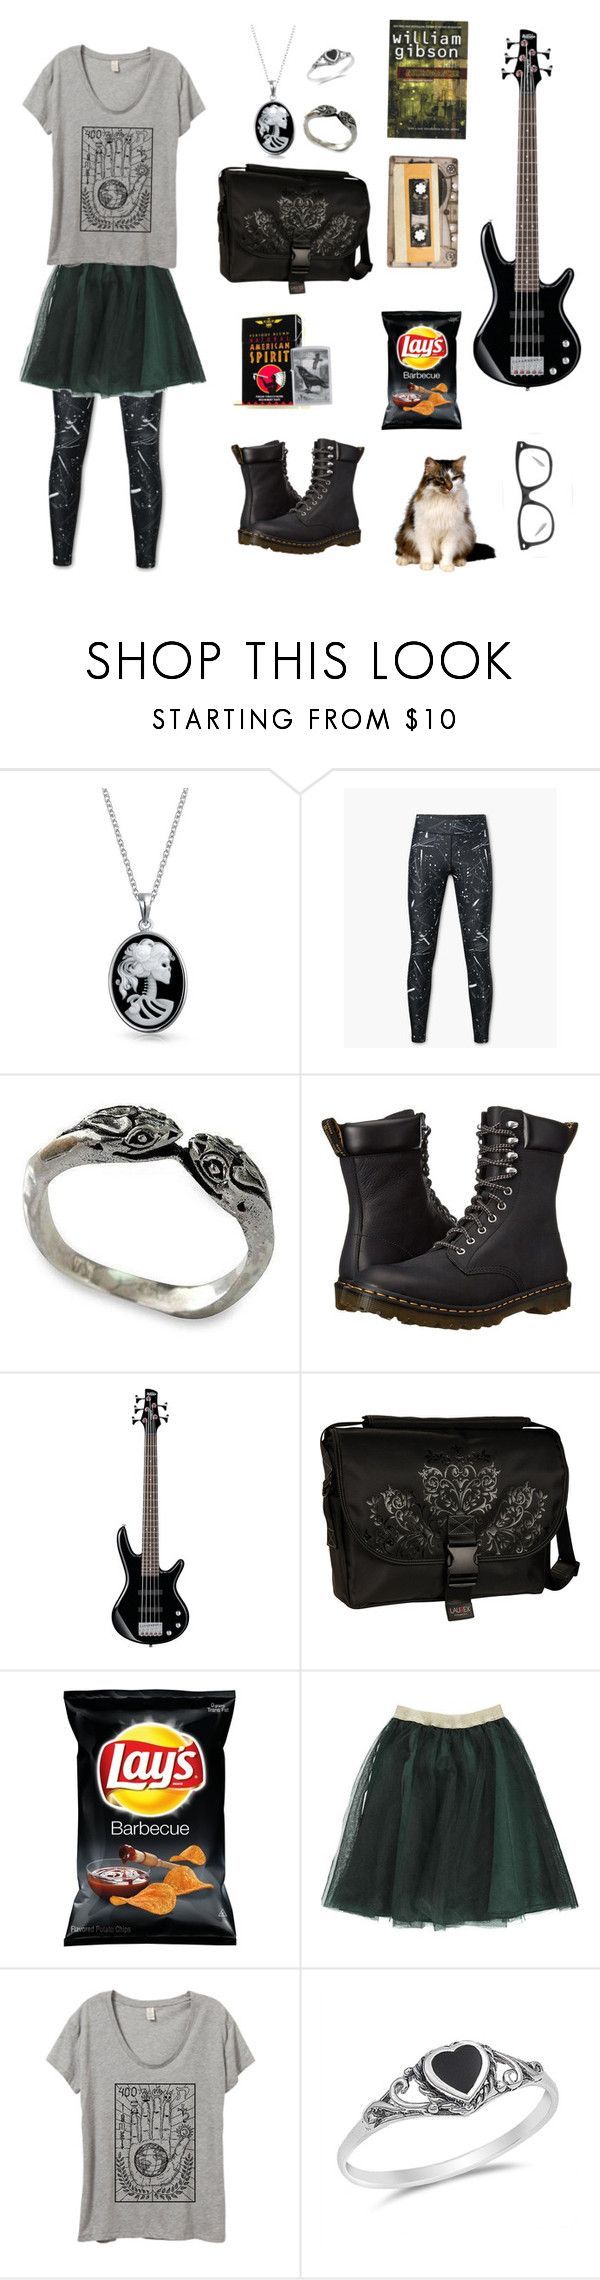 """""""That girl in the band who works at the thrift store"""" by dot-aitch ❤ liked on Polyvore featuring Bling Jewelry, MANGO, NOVICA, Zippo, Dr. Martens, Cachet and Laurex"""